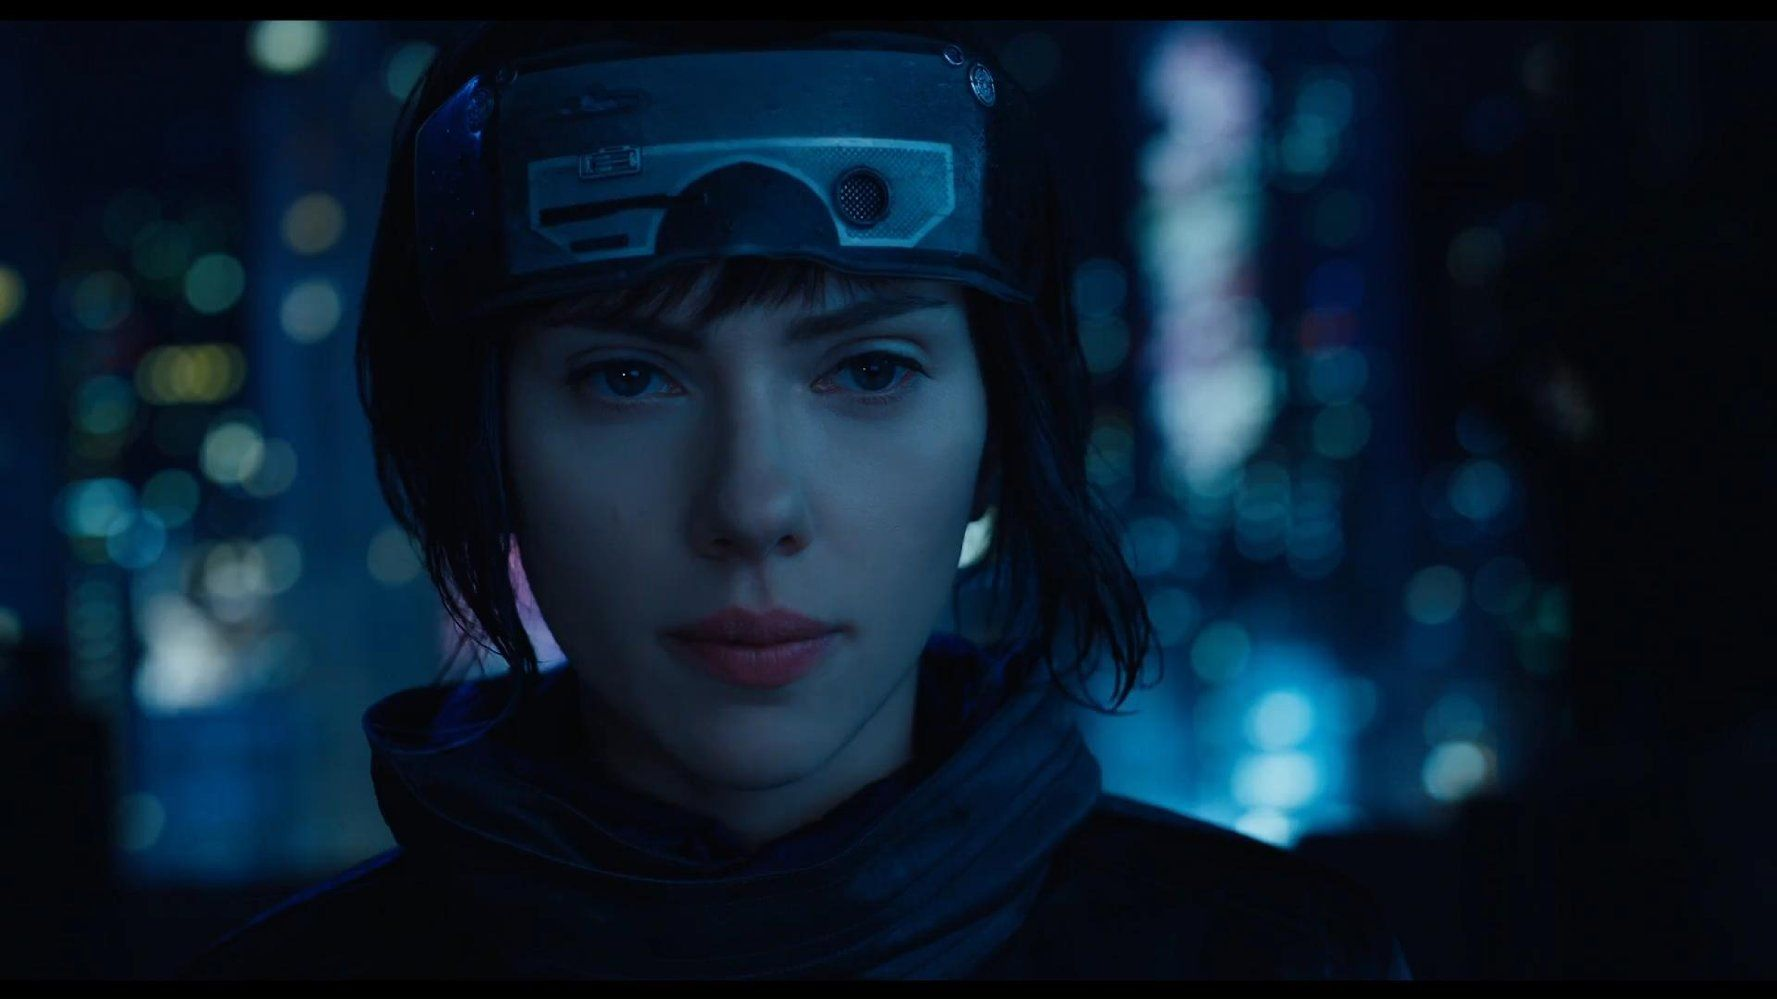 Ghost In The Shell 2017 On Imdb Movies Tv Celebs And More Scarlett Johansson Ghost Ghost In The Shell Movies